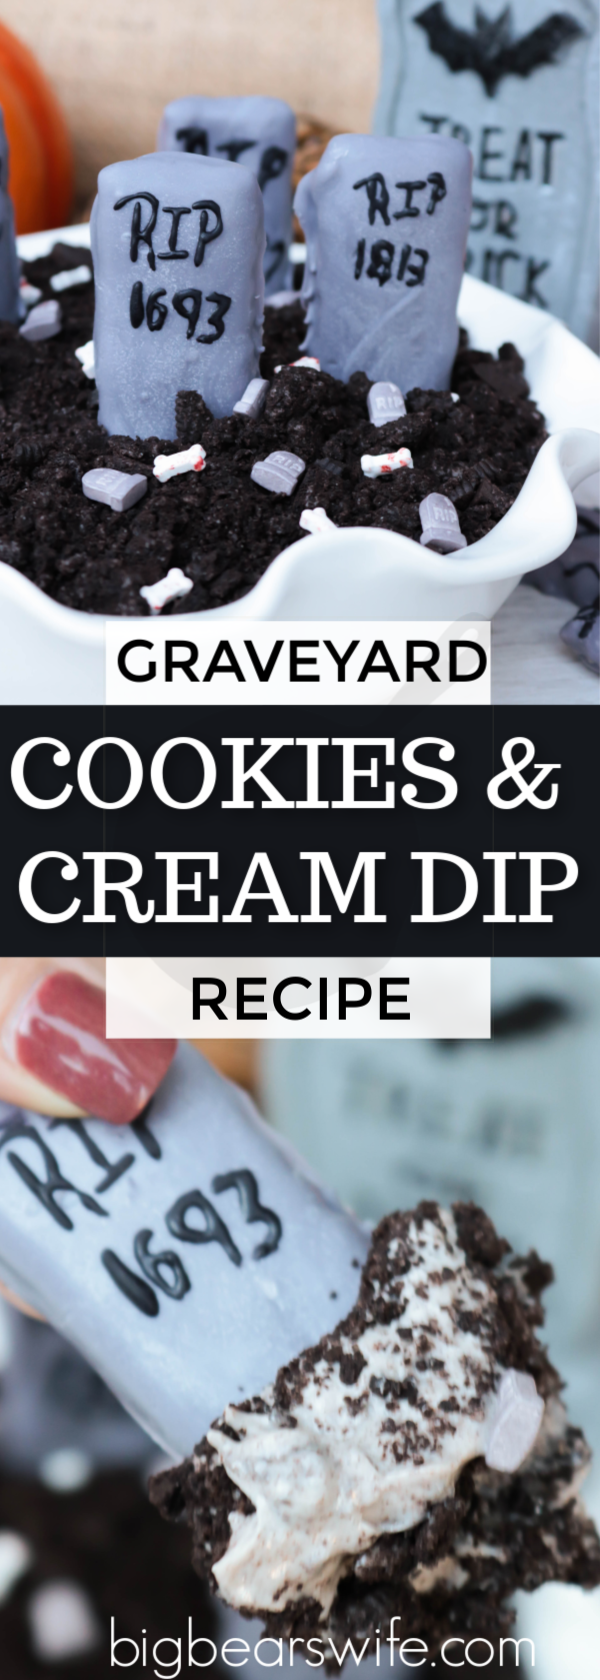 Graveyard Cookies and Cream Dip - Cookies and cream whipped together in this Graveyard Cookies and Cream Dip will be a drop-dead delicious treat for all of the ghost and ghouls at your house this Halloween! via @bigbearswife